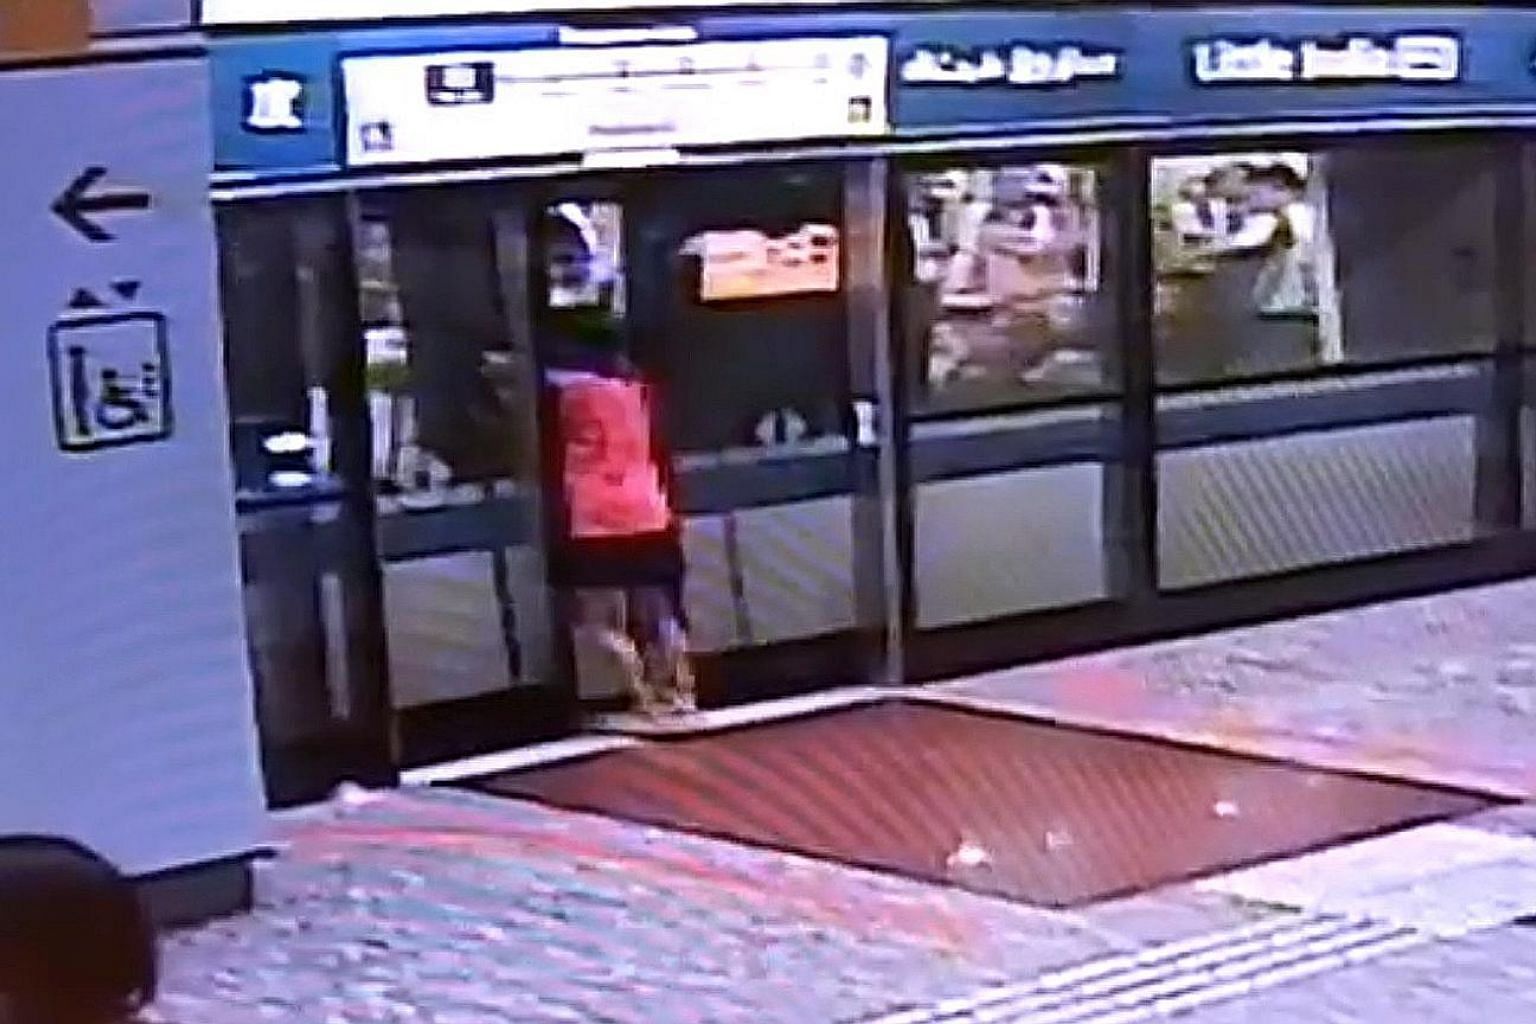 In a screen grab of a video shared on social media, a woman is seen prising open the platform doors before attempting to force open the train doors. The clip also shows commuters trying to help her.